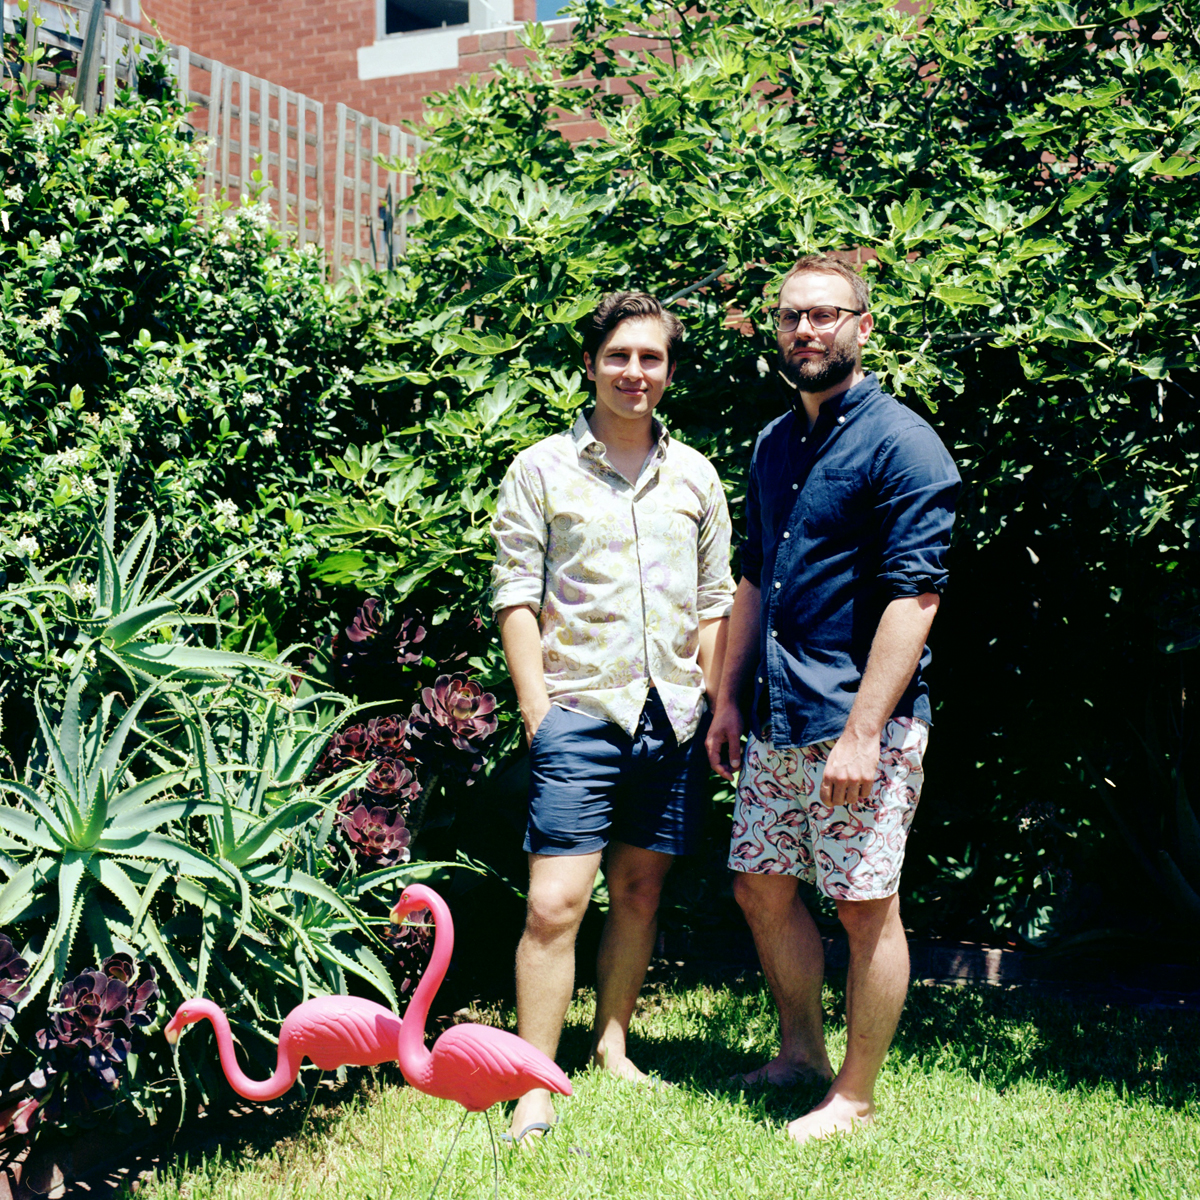 Gardener Archive. 2017. Tom and Edward, in their garden in Princess Hill, Melbourne, Australia